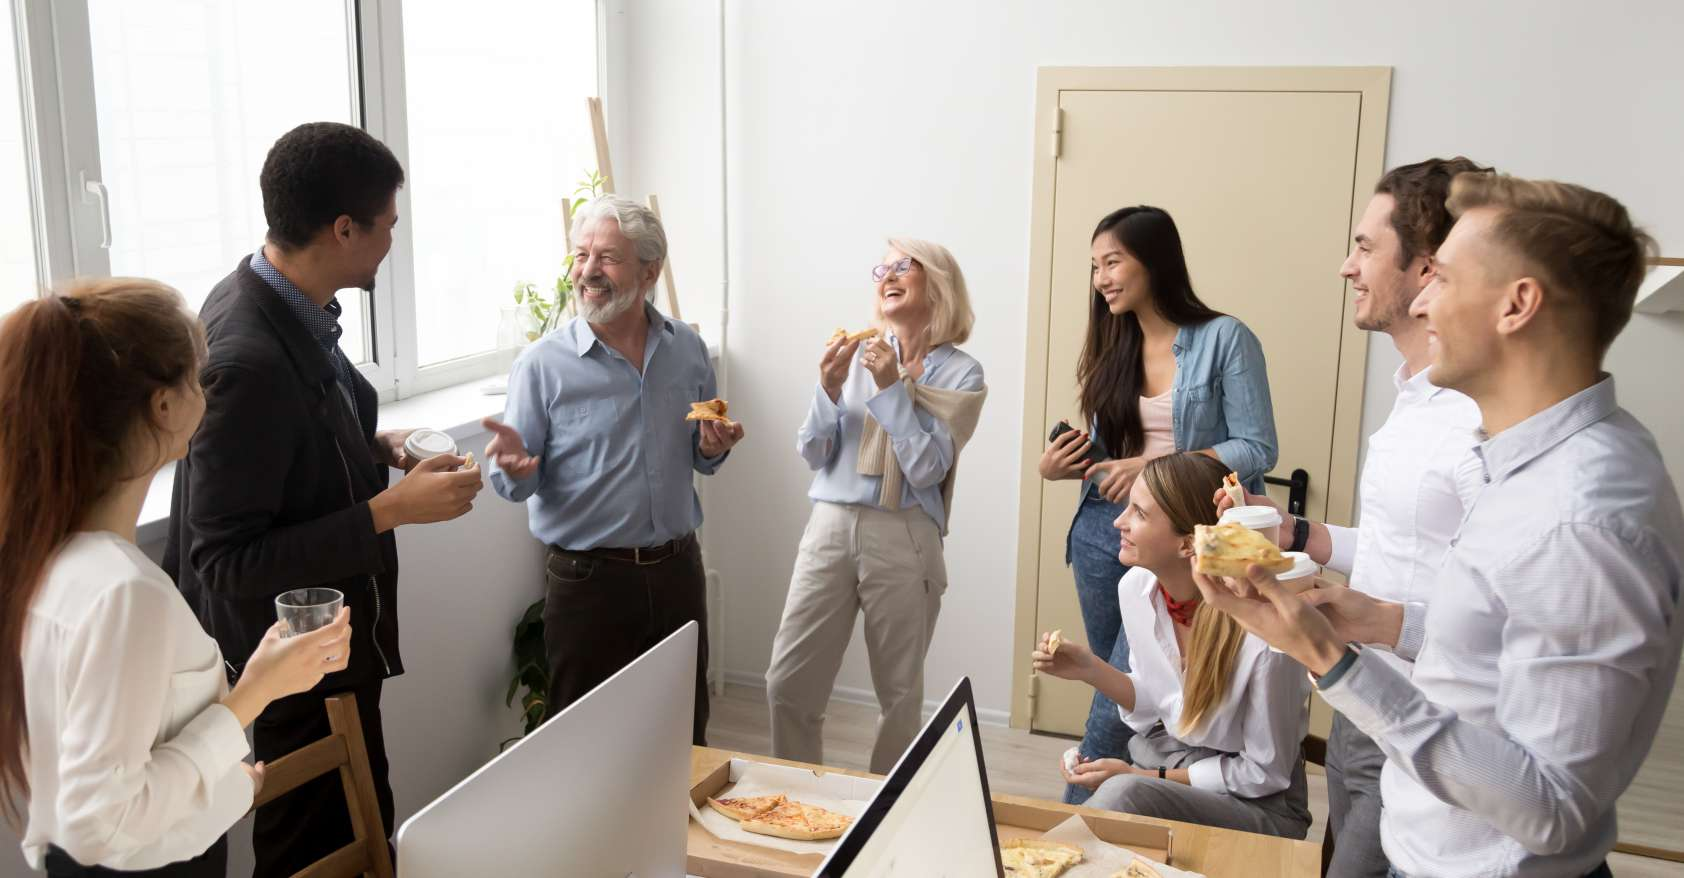 Friendly diverse business team talking and laughing eating pizza together promoting workplace culture